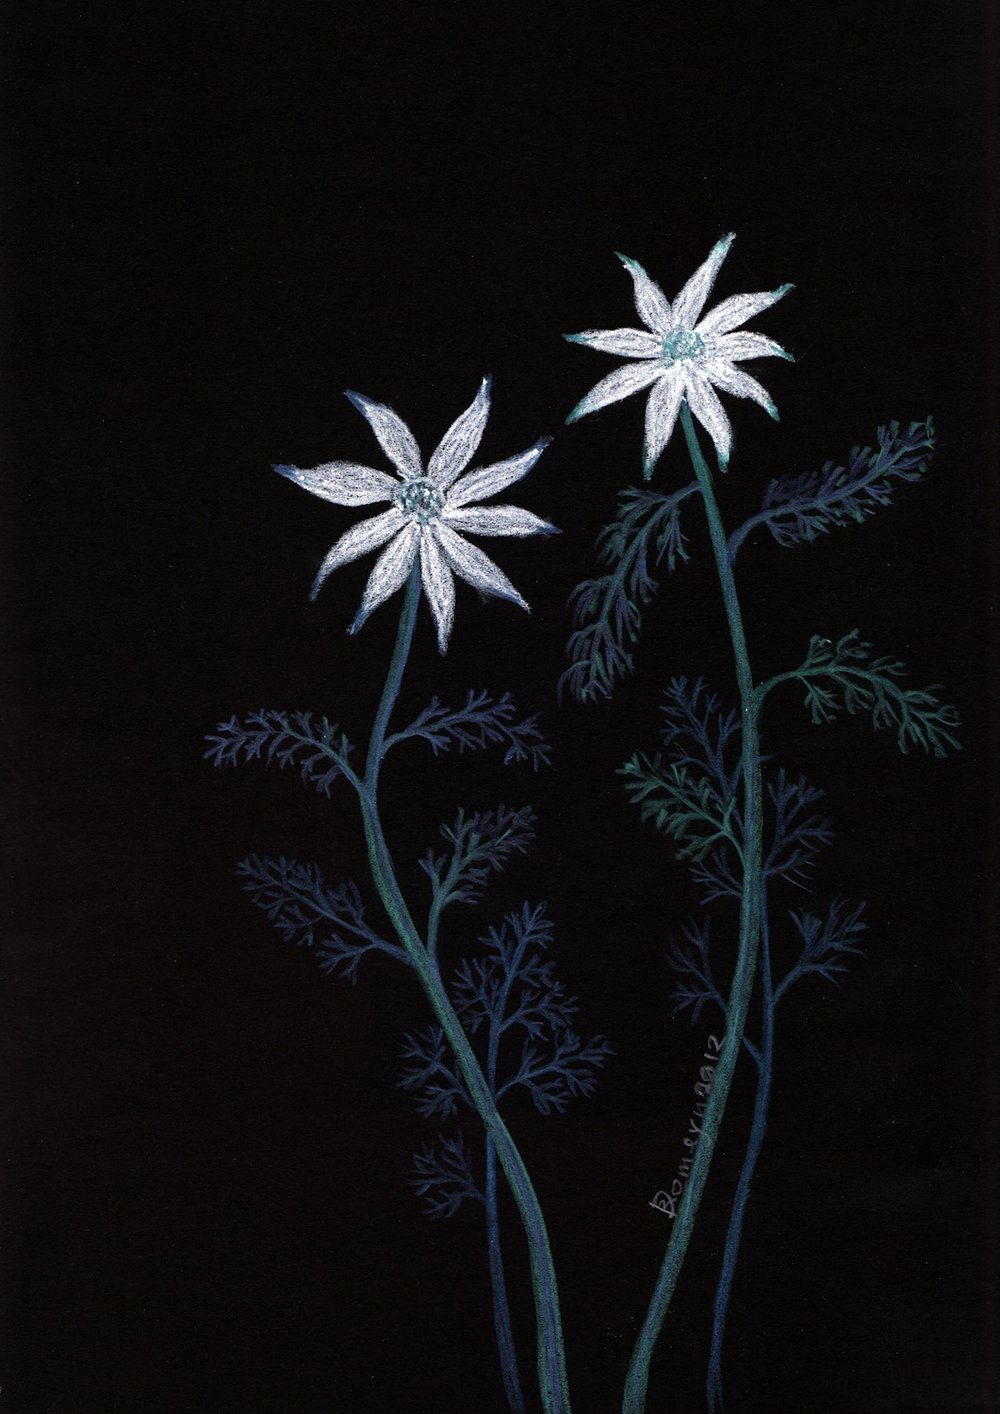 Dirk Romeyn's drawings'Flannel Flowers' and 'Study of Flowers' are in this winter Blue Mountains exhibition in Katoomba